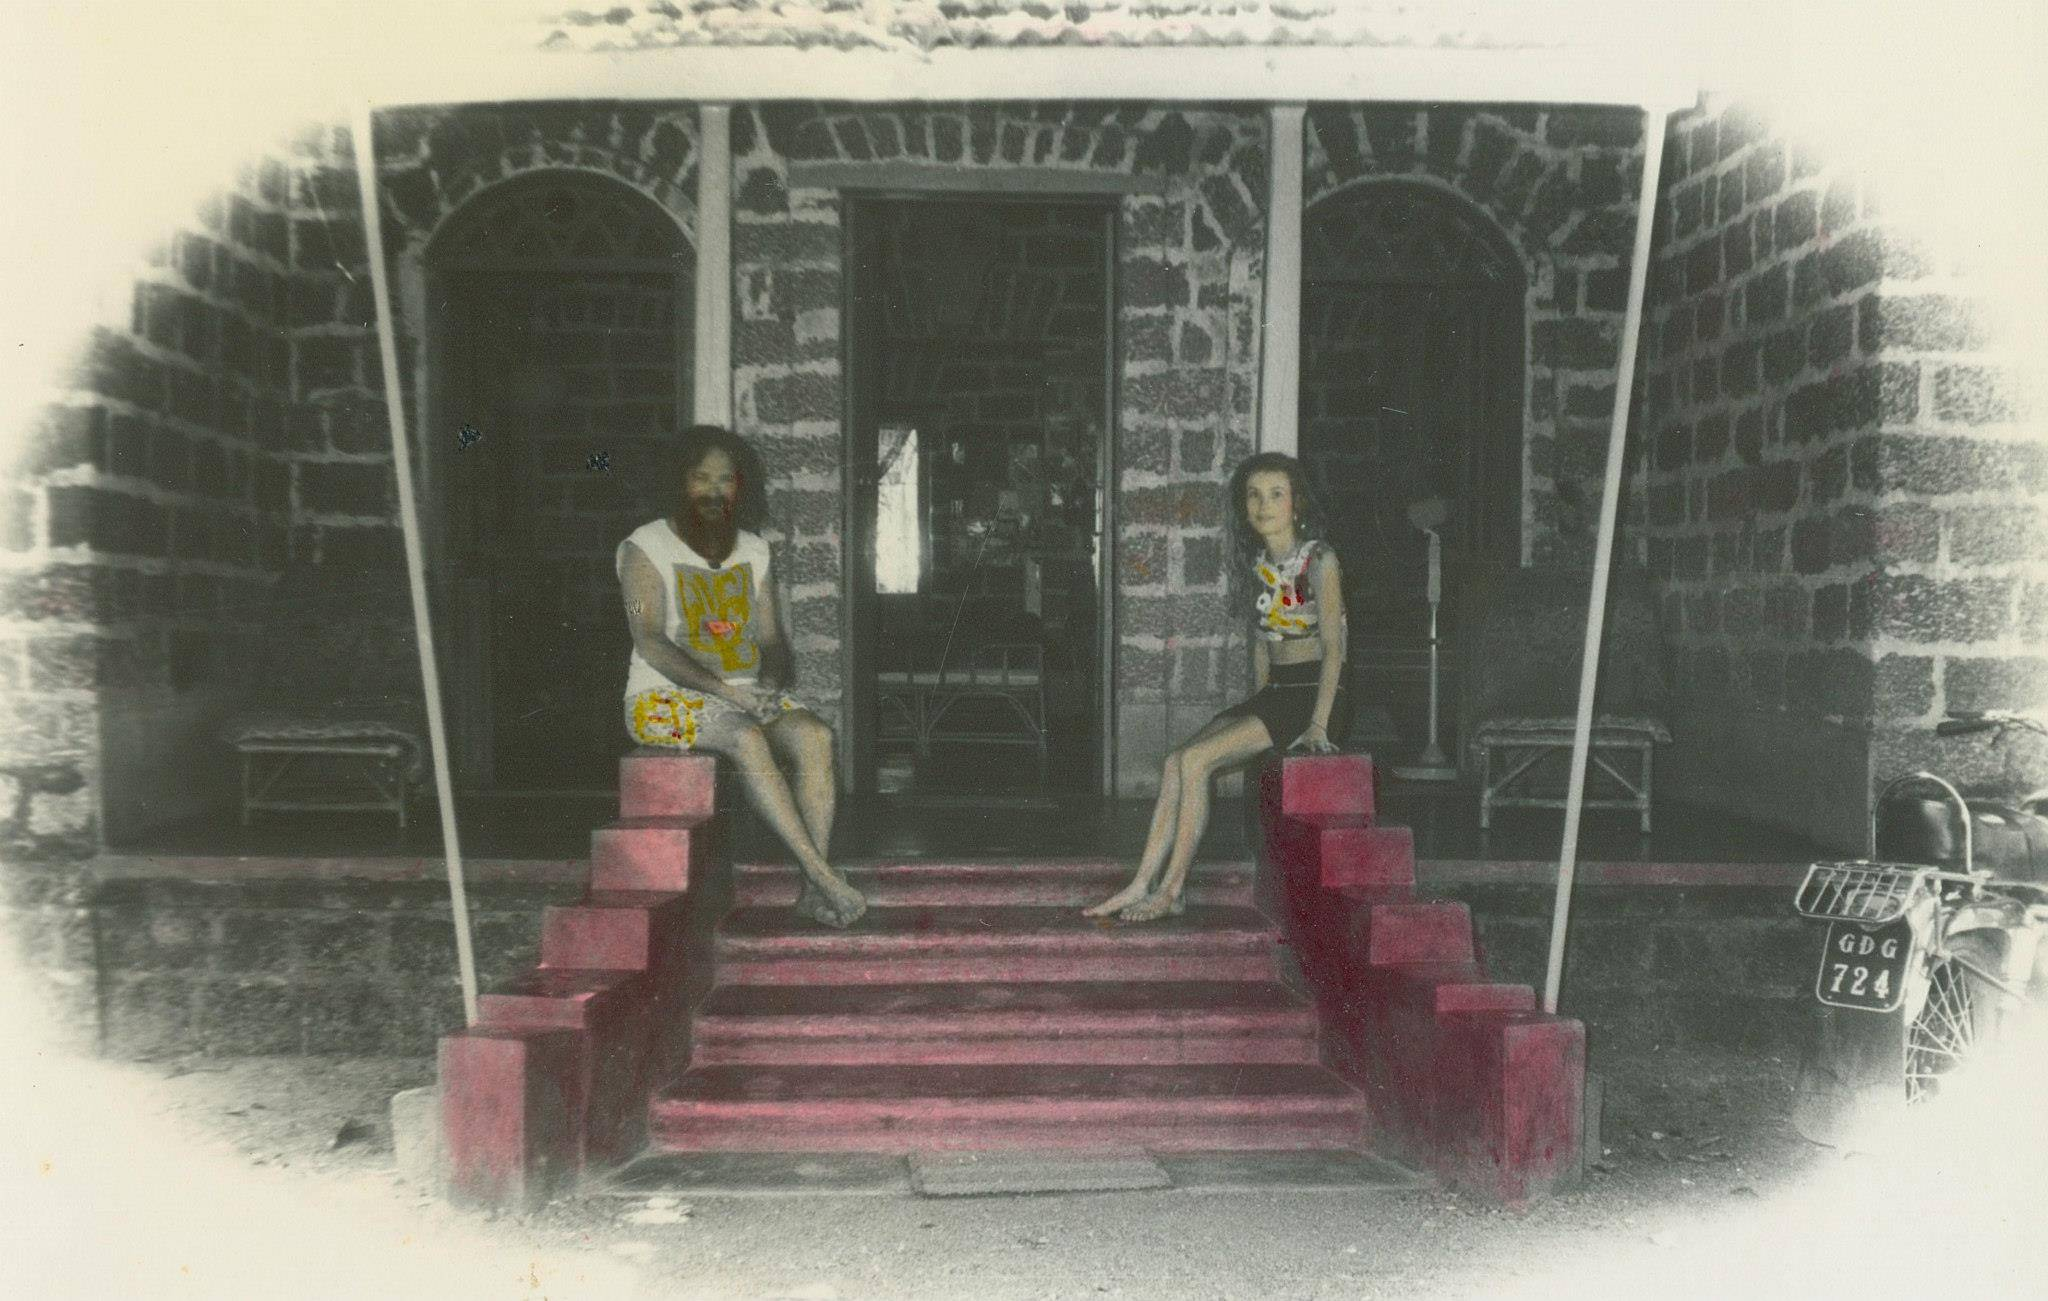 Goa Gil & Arriane in their house in Goa in the early 1970s